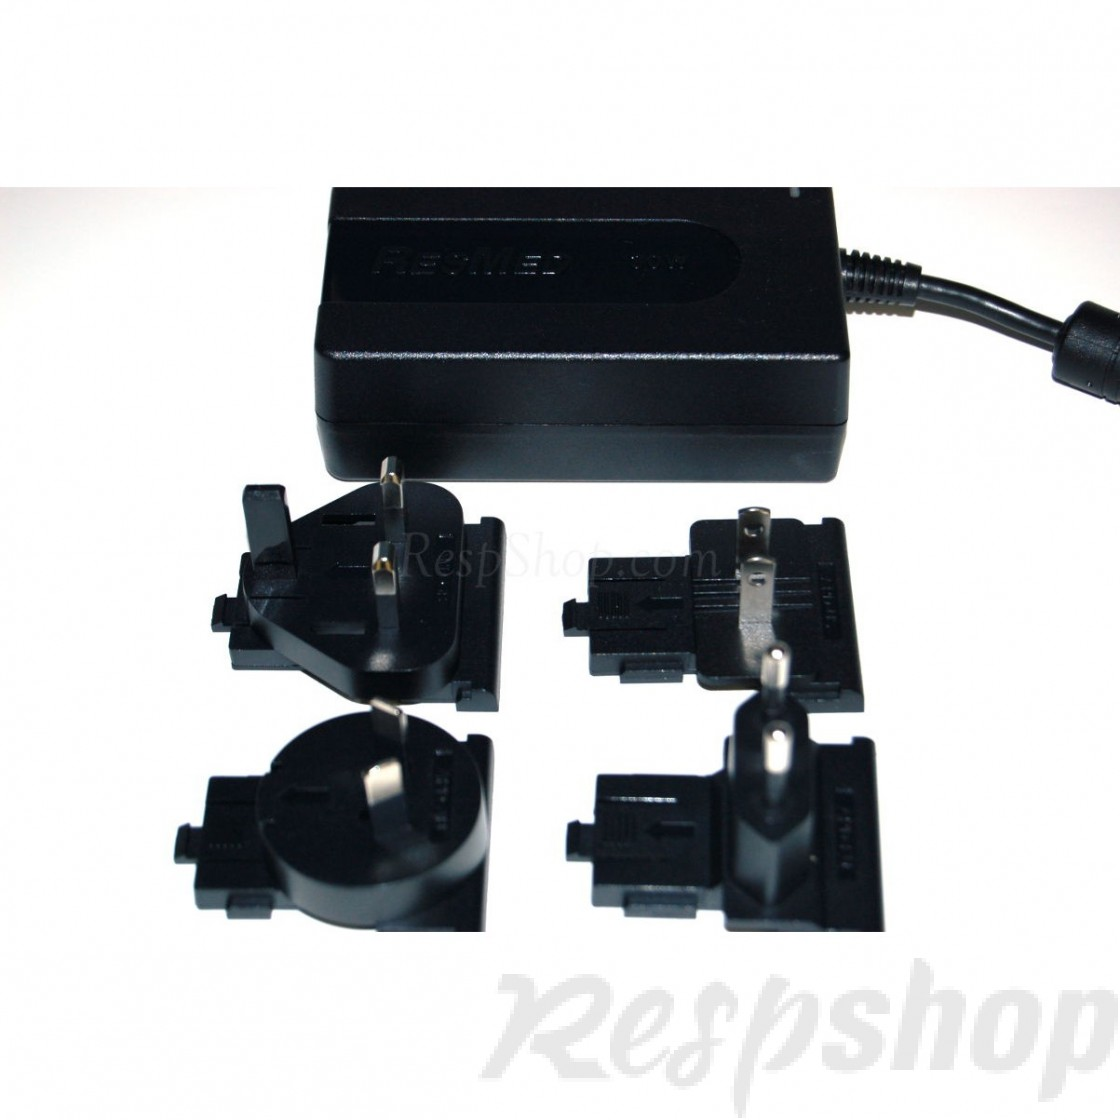 ResMed S9 Series Power Adapter - 30W